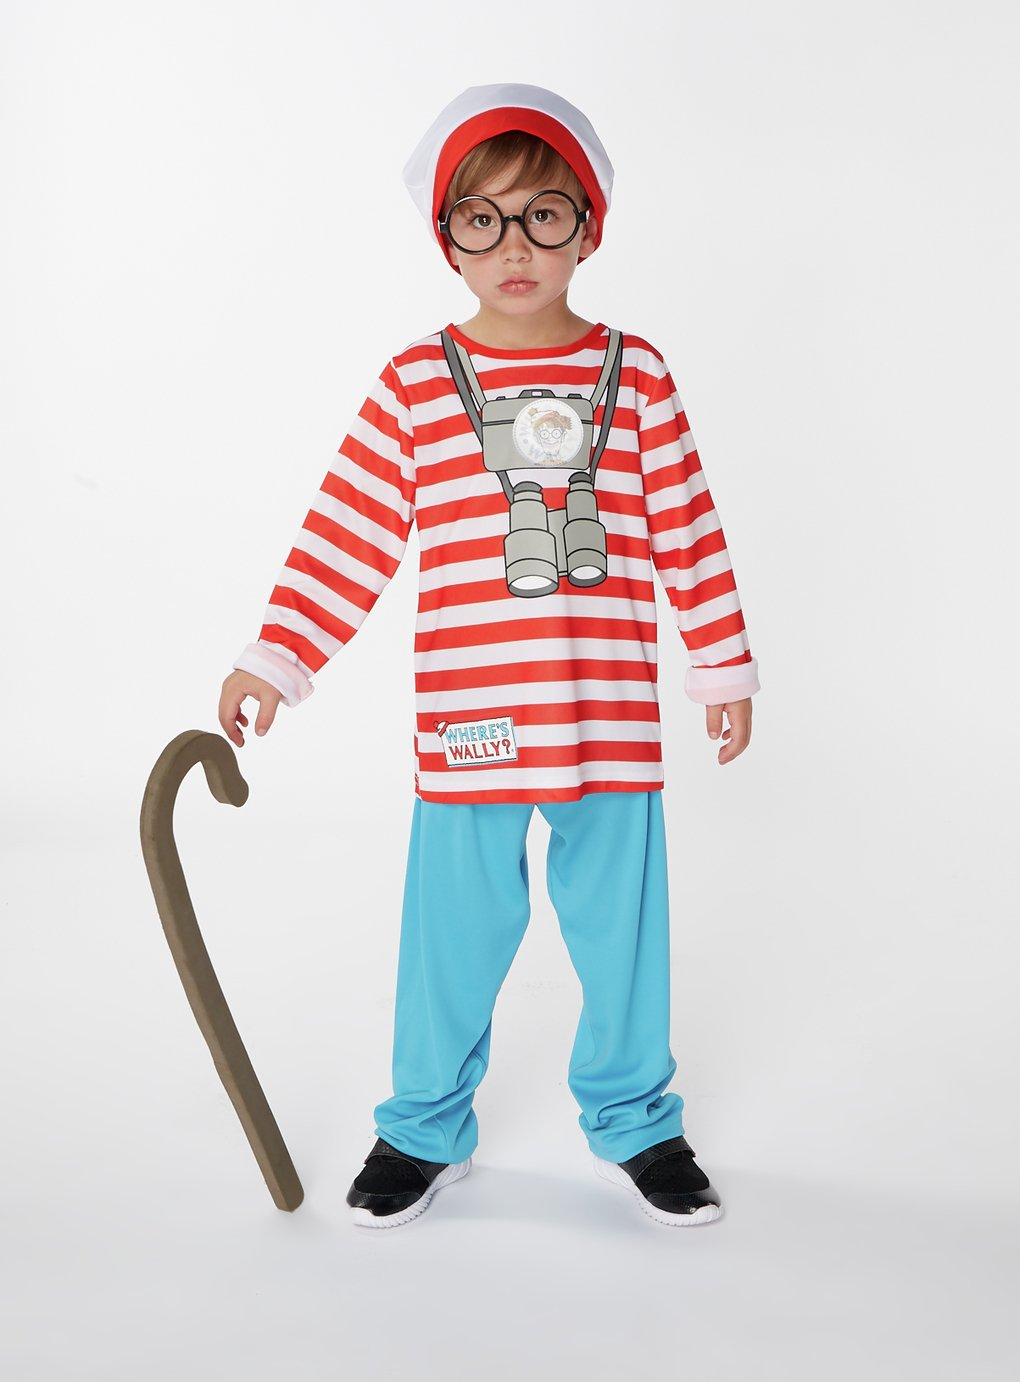 Where's Wally Fancy Dress Costume - 9-10 Years